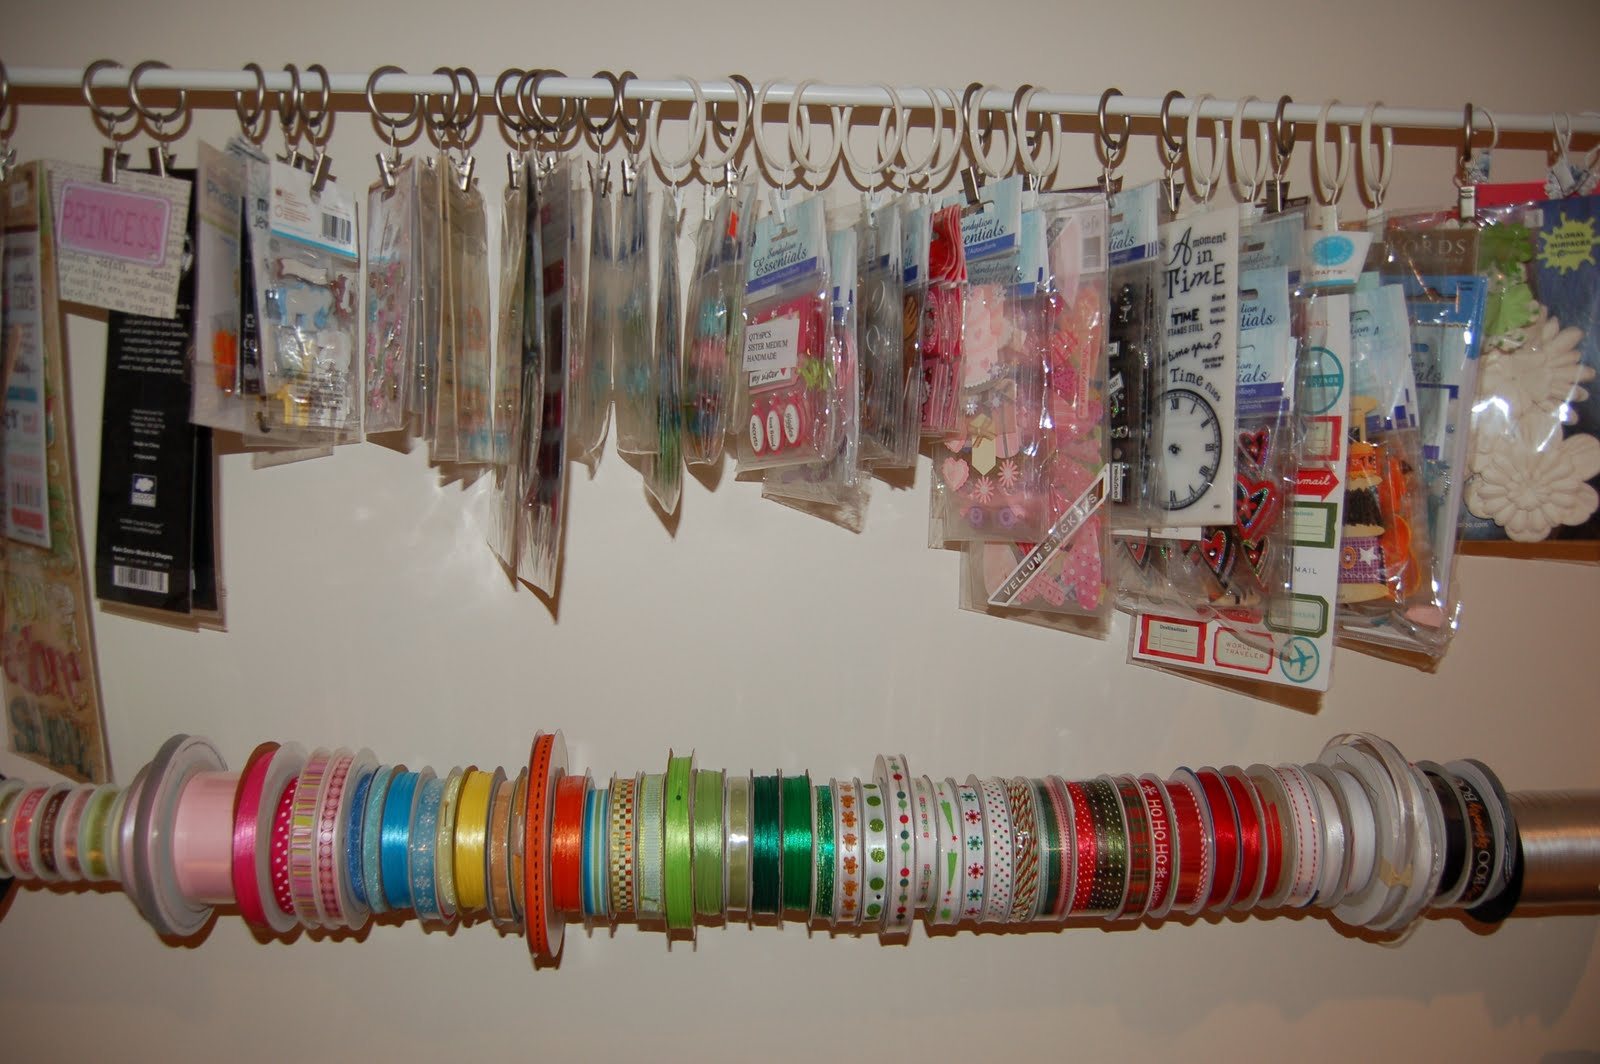 Ribbon holder diy crafting for fun diy ribbon holder my crafty corner solutioingenieria Image collections